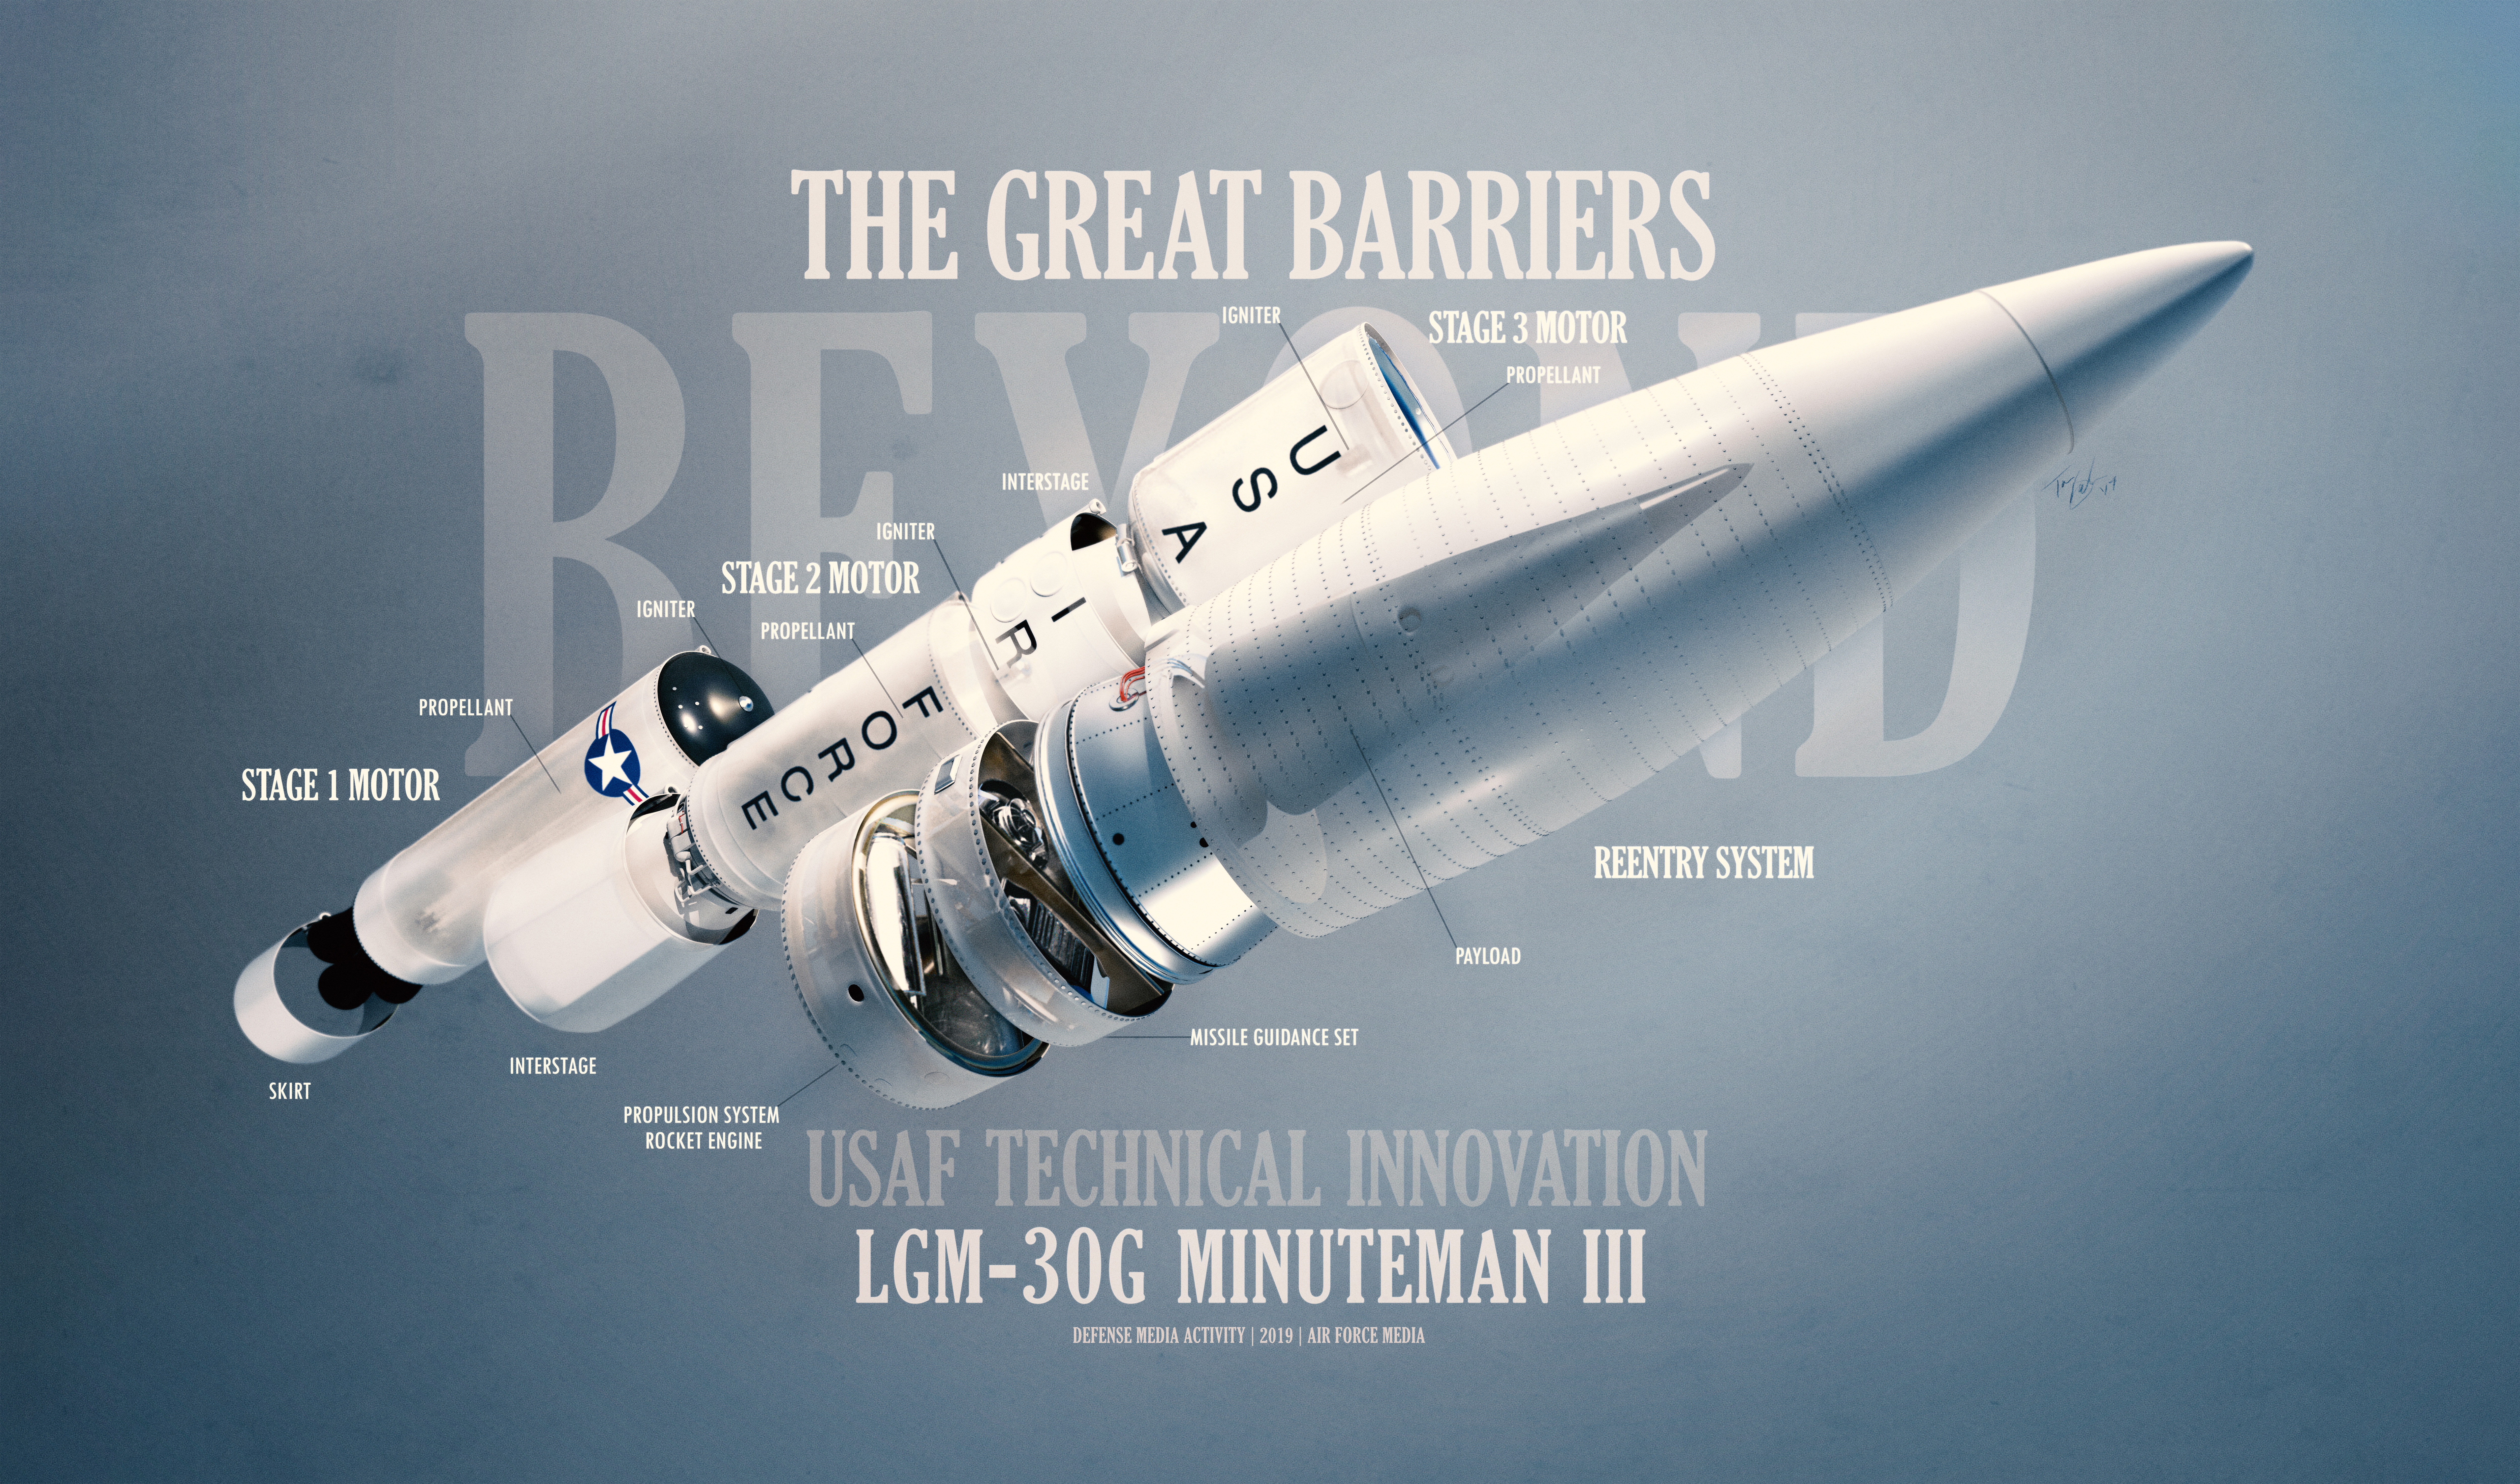 Illustration showing the components of the LGM-30G Minuteman III ICBM.